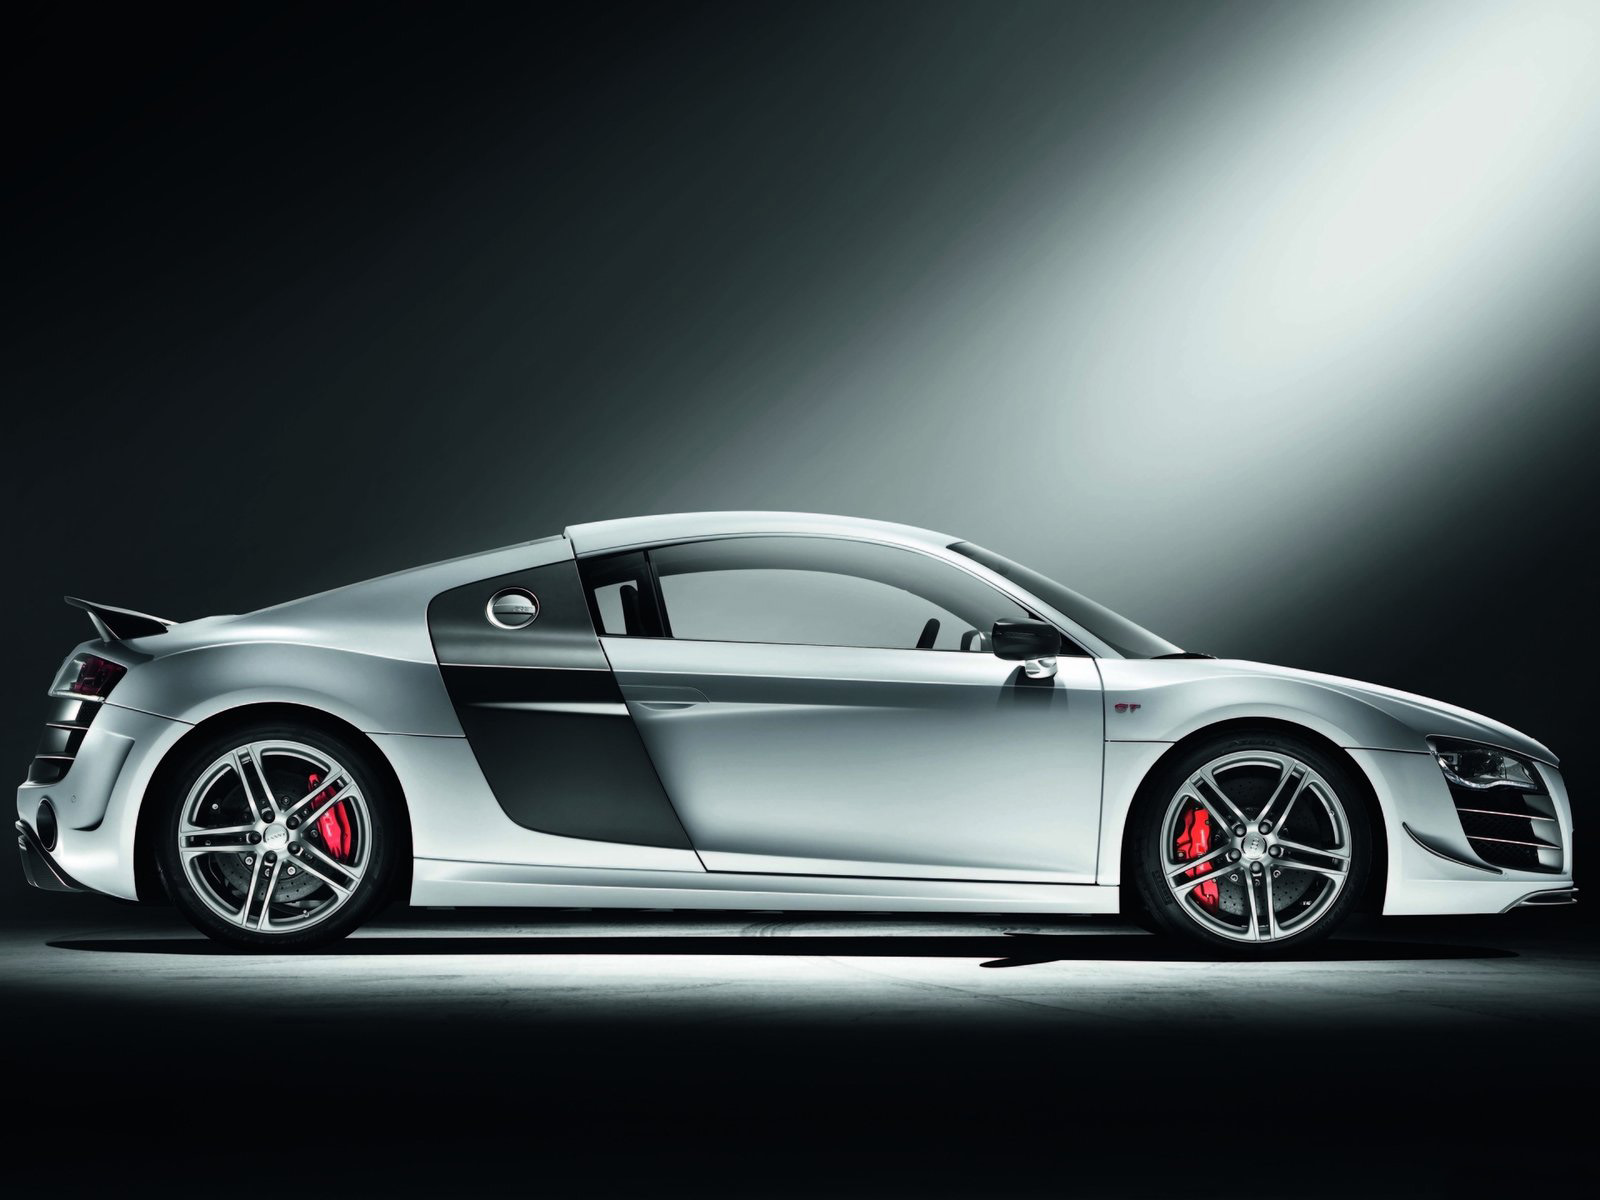 Audi R8 Wallpaper Download HD Wallpaper